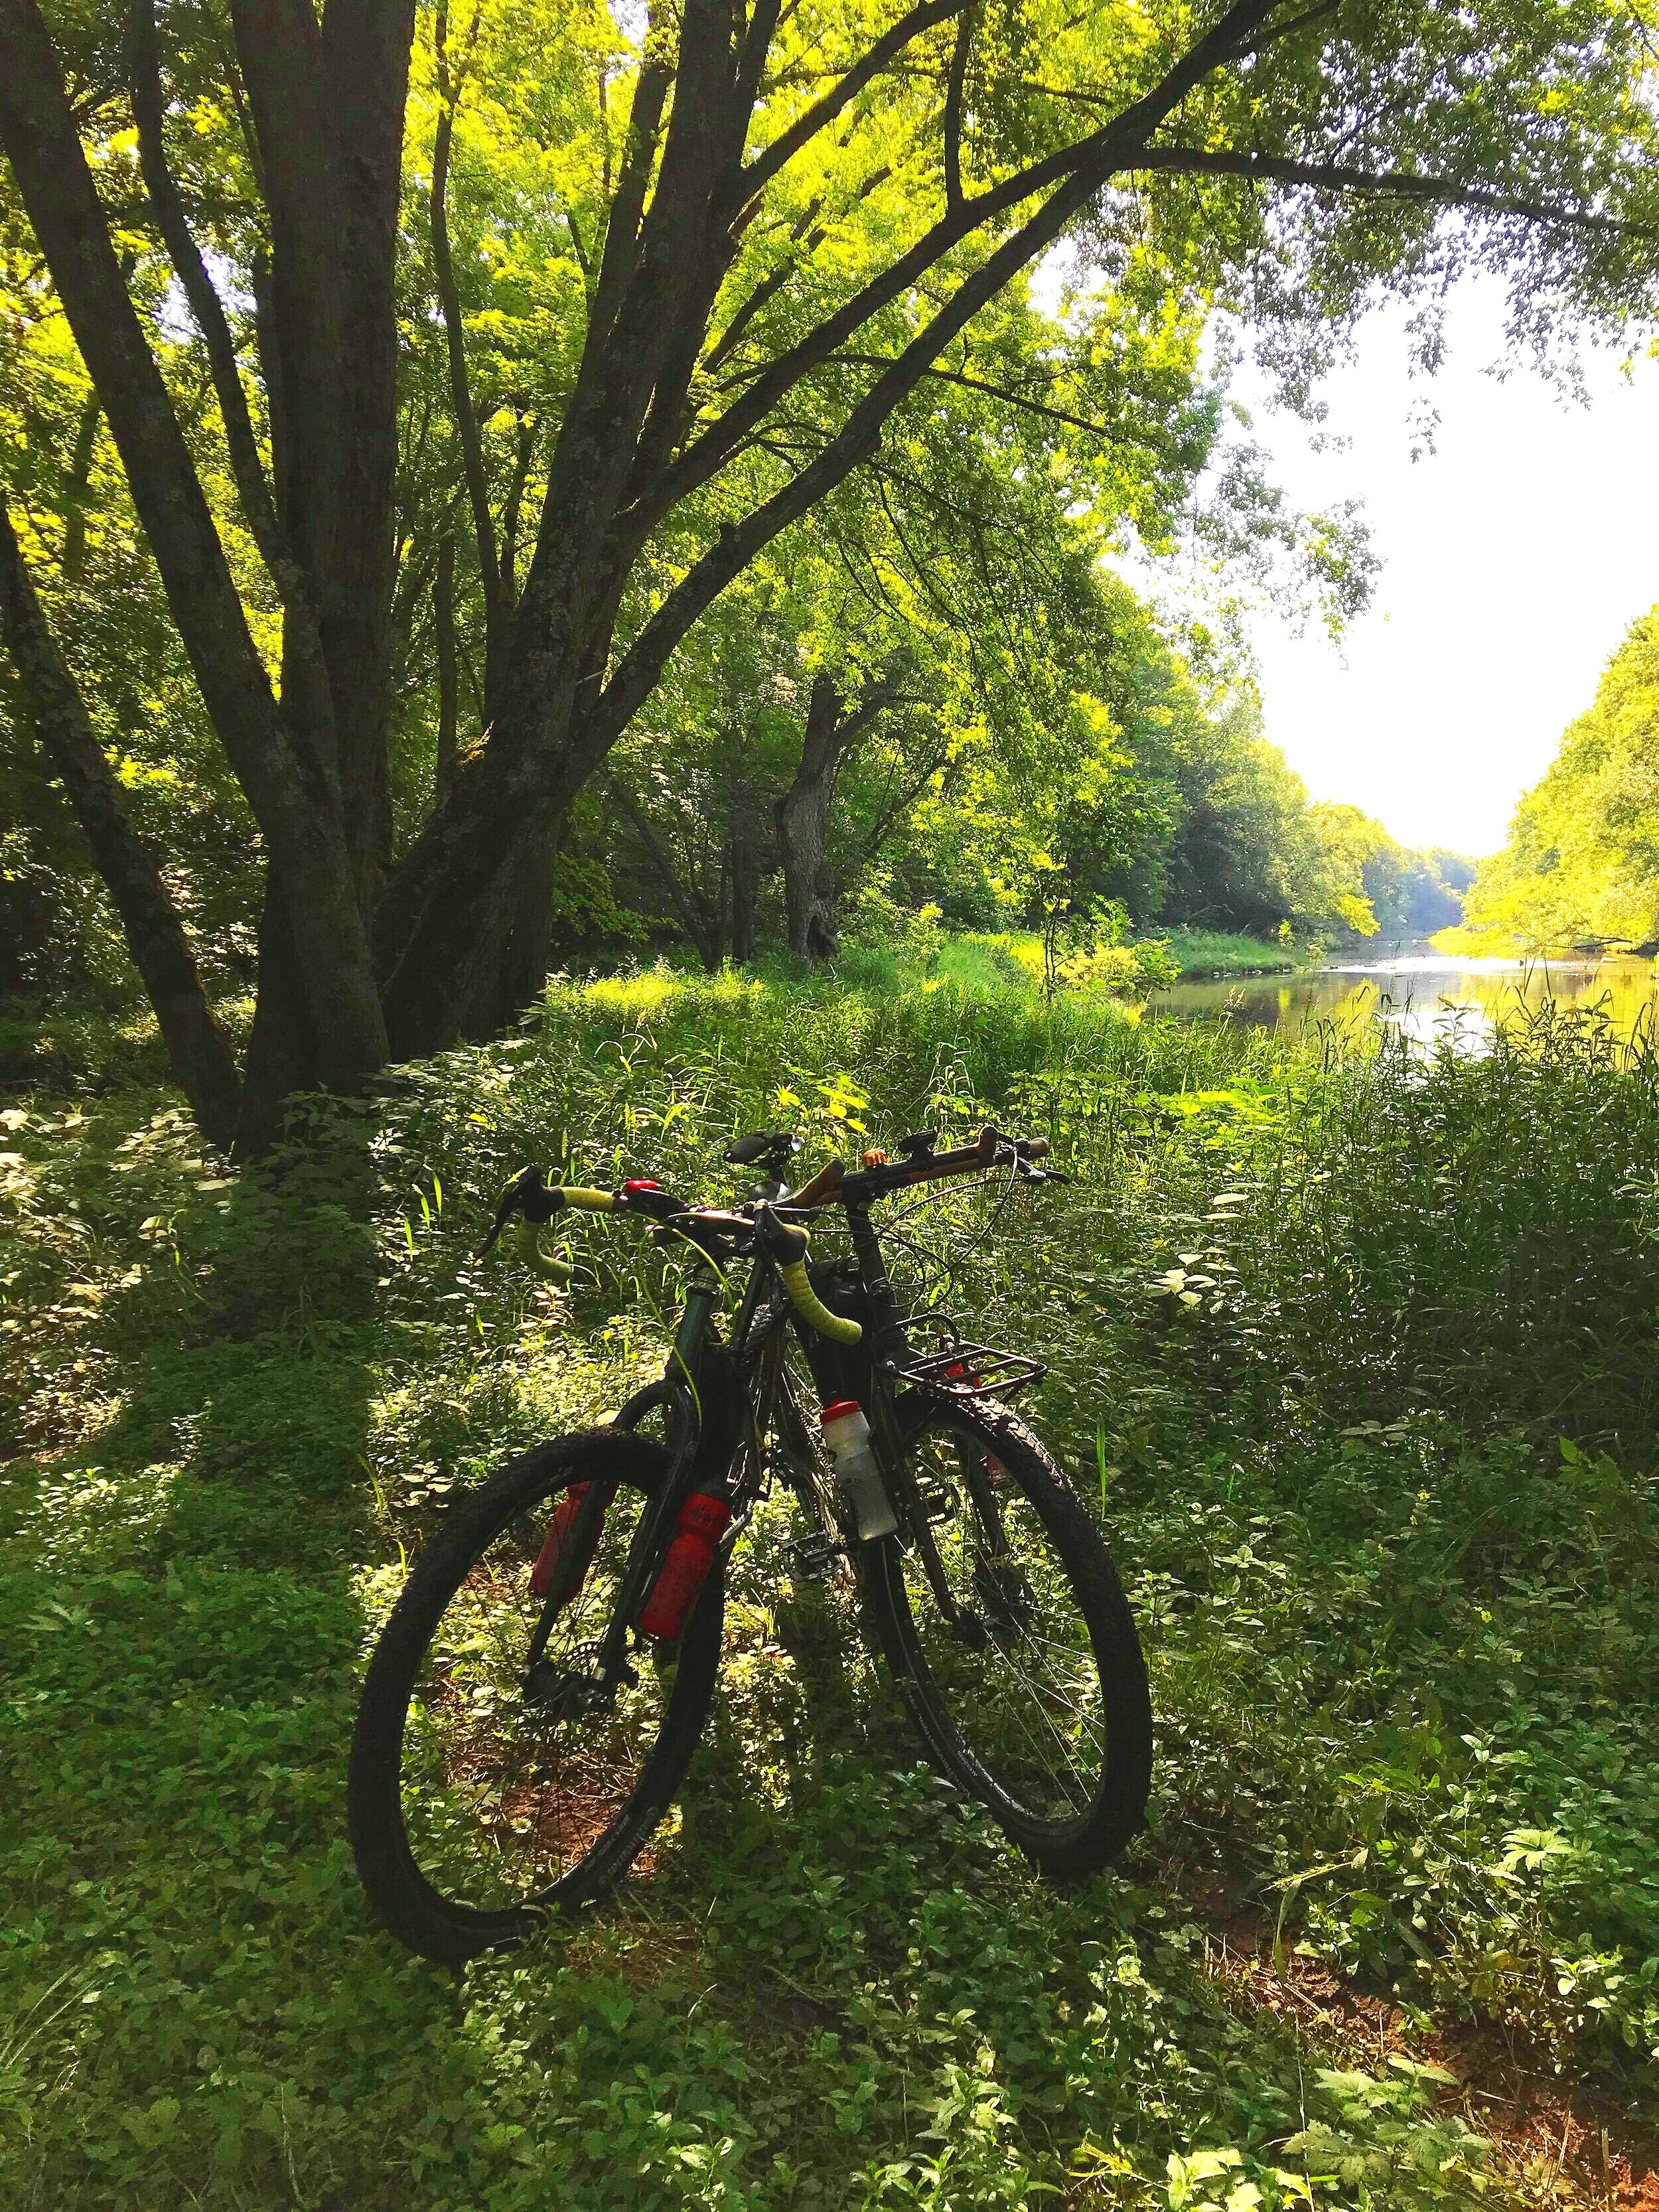 Several featured sections on the course take riders on trails, including this private land section along the Rib River.